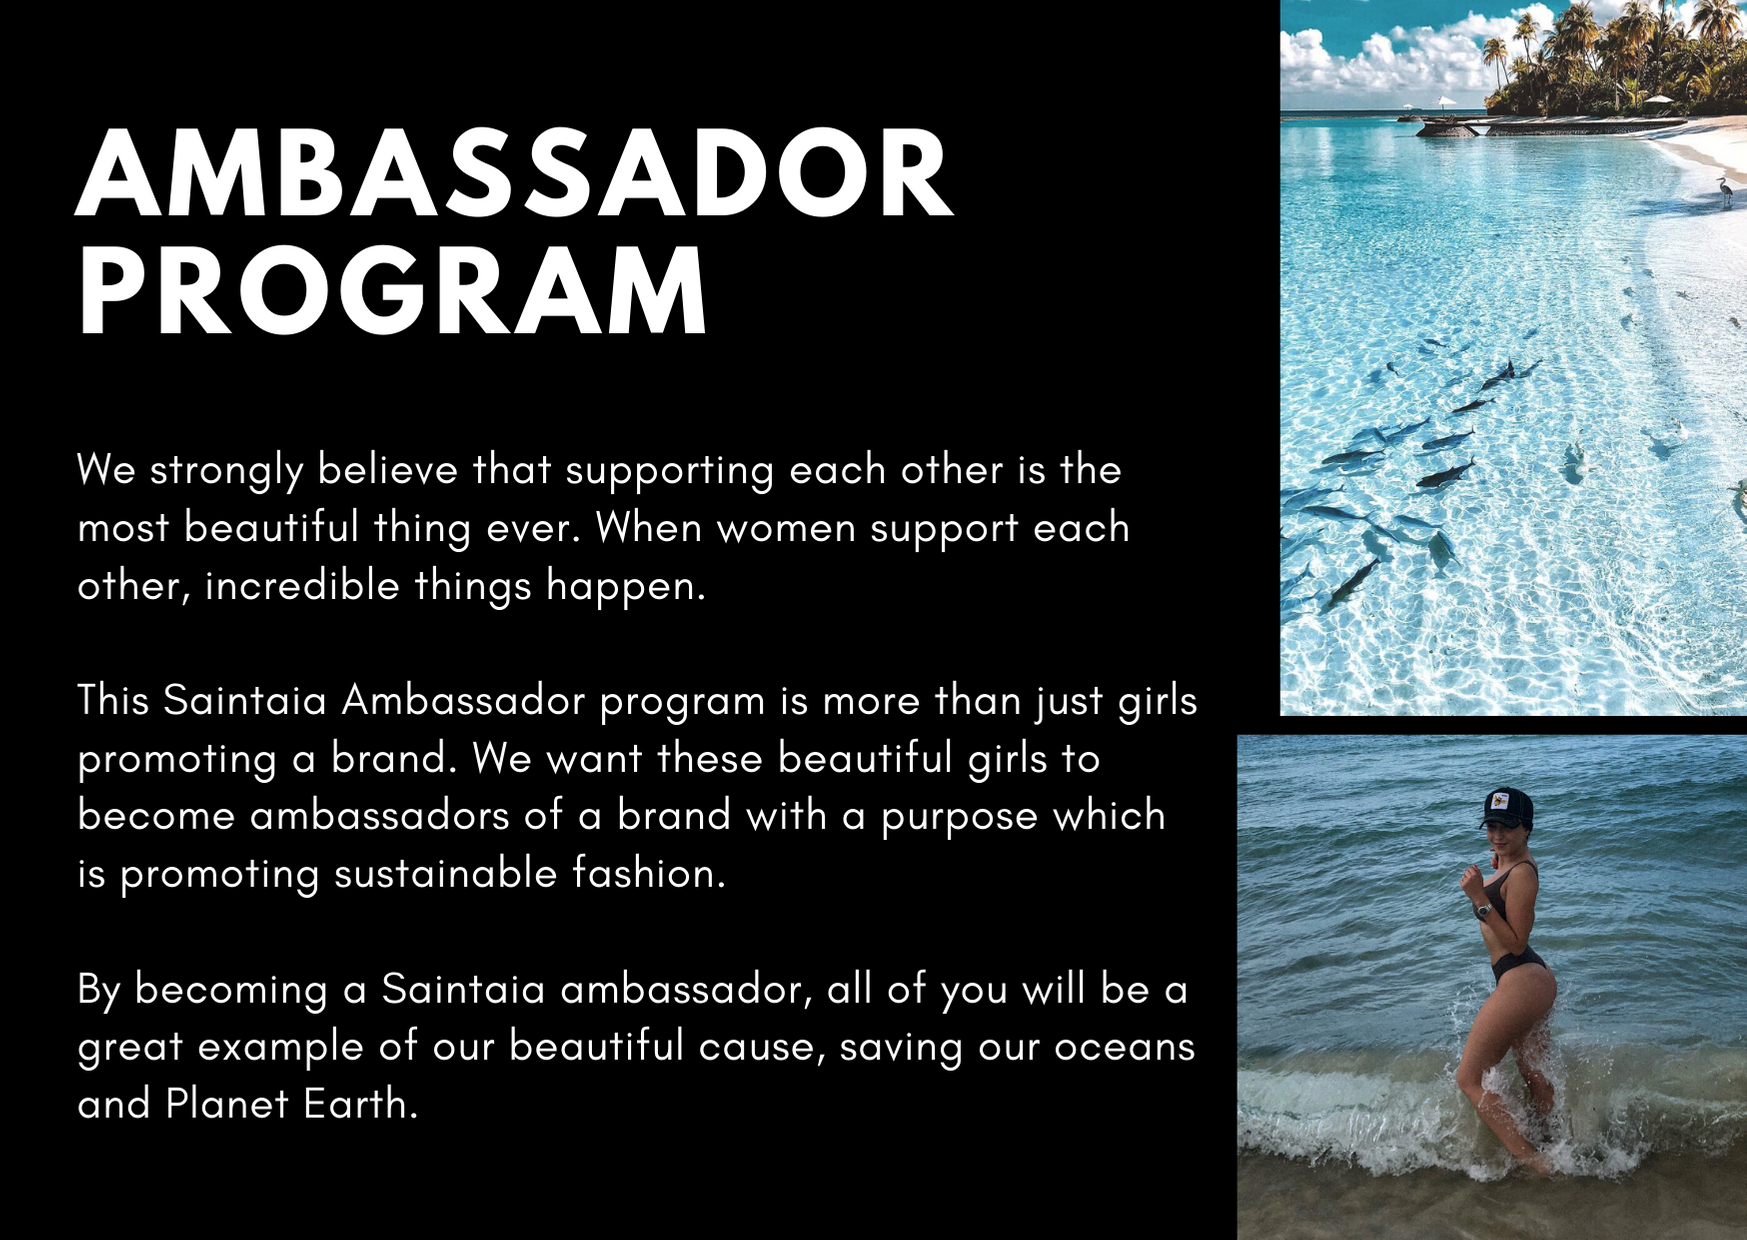 SAINTAIA AMBASSADOR PROGRAM